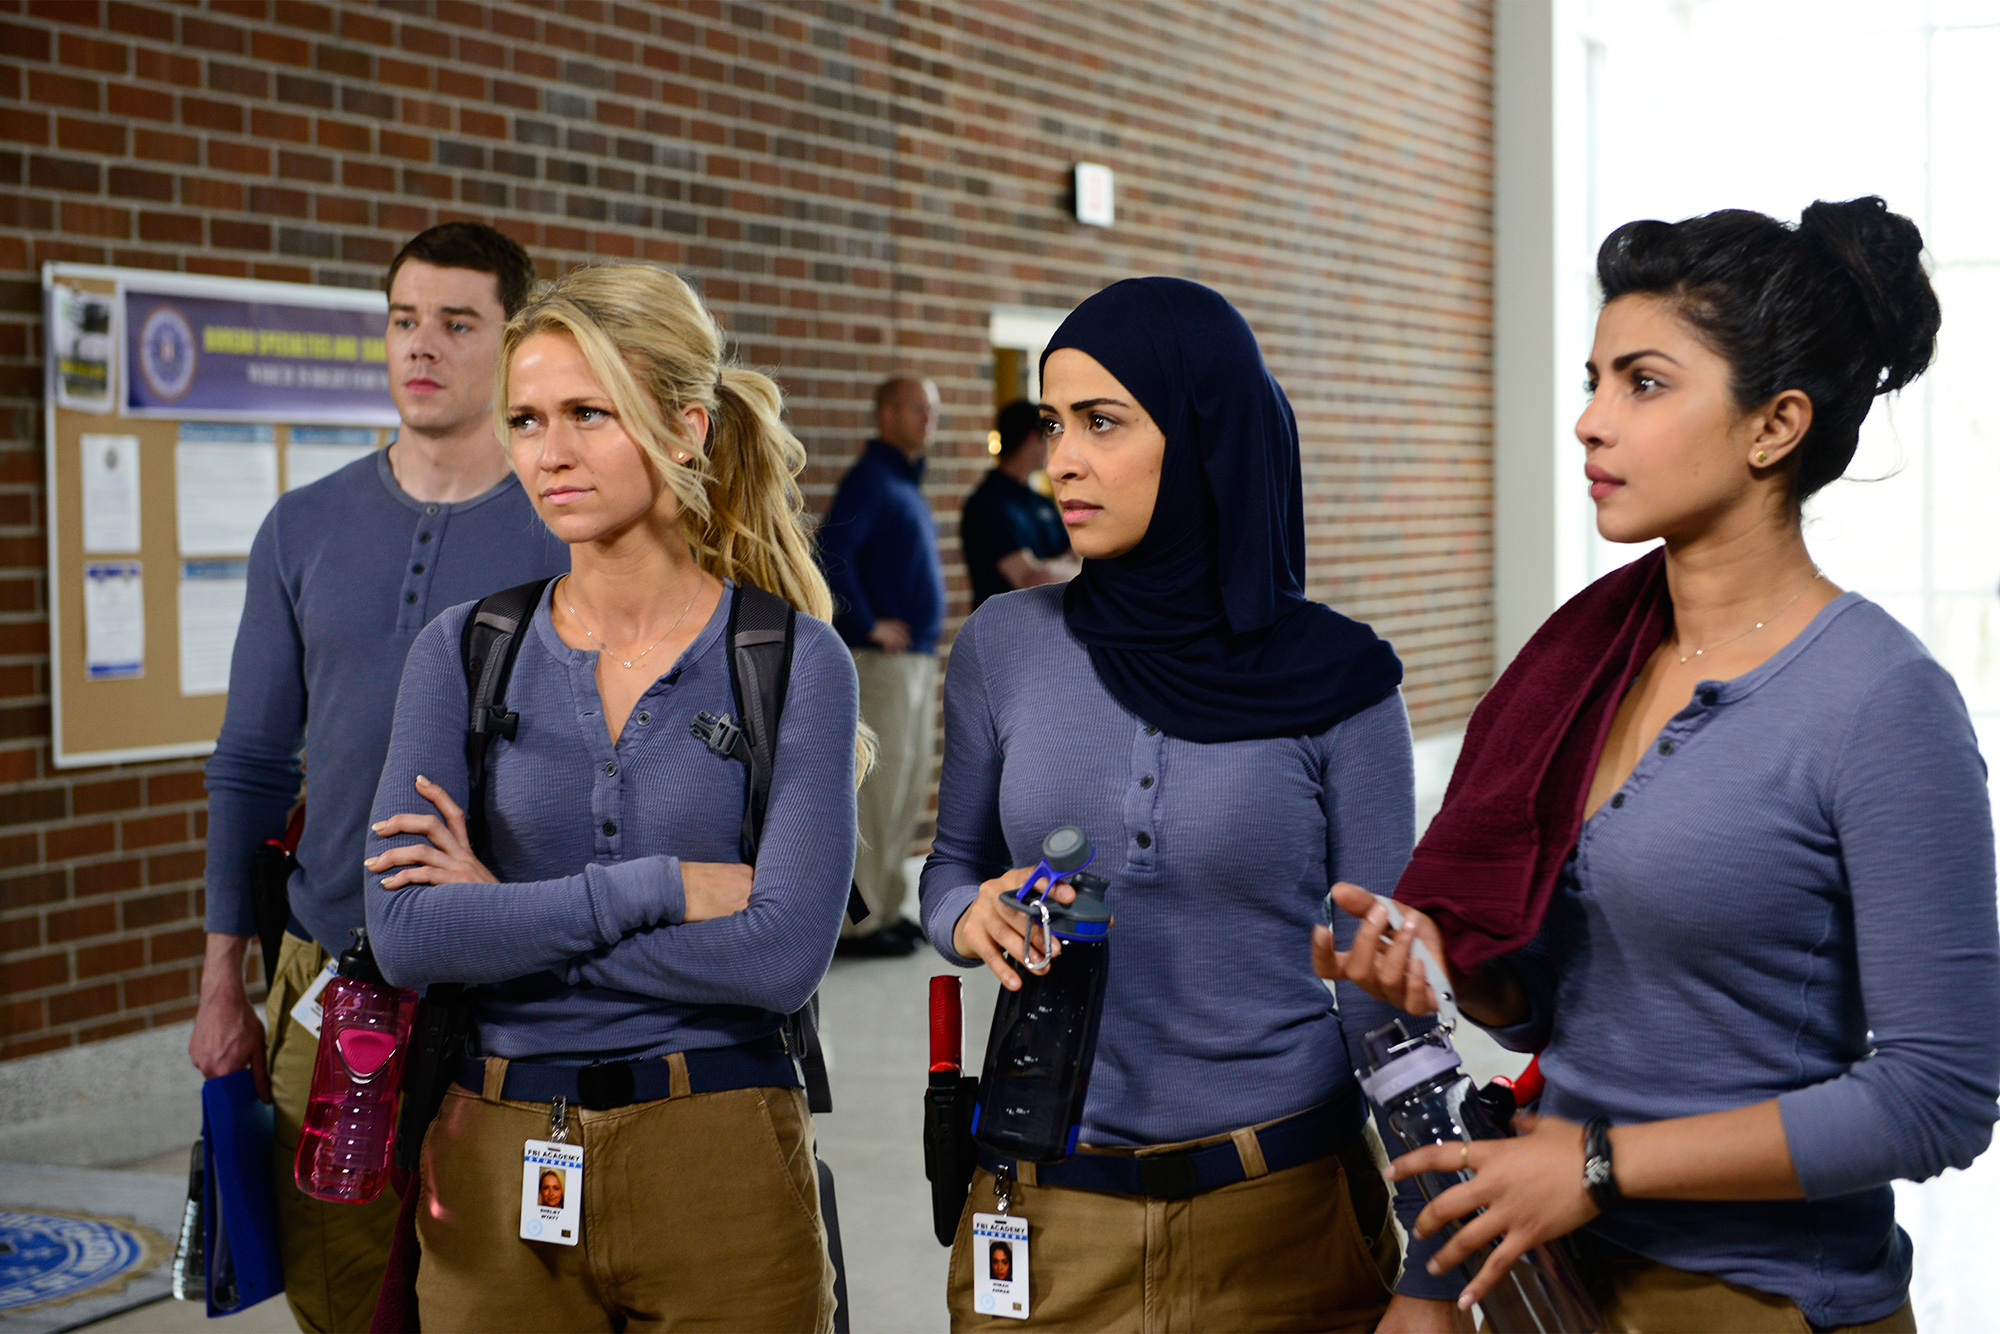 "QUANTICO - A diverse group of recruits has arrived at the FBI Quantico Base for training. They are the best, the brightest and the most vetted, so it seems impossible that one of them is suspected of masterminding the biggest attack on New York City since 9/11. ""Quantico"" stars Priyanka Chopra as Alex, Dougray Scott as Liam, Jake McLaughlin as Ryan, Aunjanue Ellis as Miranda, Yasmine Al Massri as Nimah, Johanna Braddy as Shelby, Tate Ellington as Simon and Graham Rogers as Caleb. ""Quantico"" was written by Josh Safran. Executive producers are Josh Safran, Mark Gordon and Nick Pepper. ""Quantico"" is produced by ABC Studios. (Photo by Guy D'Alema/ABC via Getty Images)"